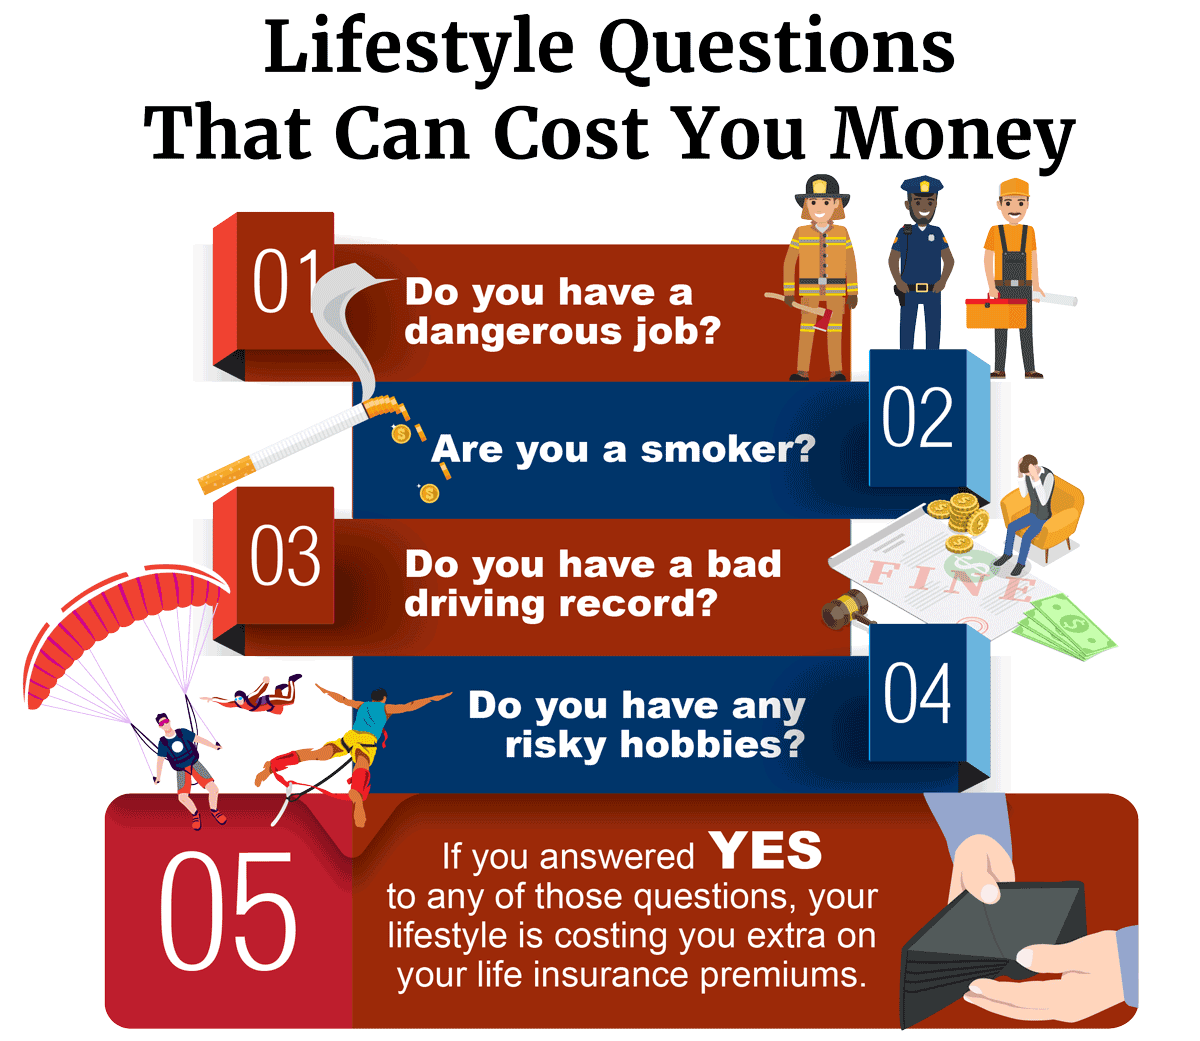 Lifestyle Questions That Can Cost You Money Infographic